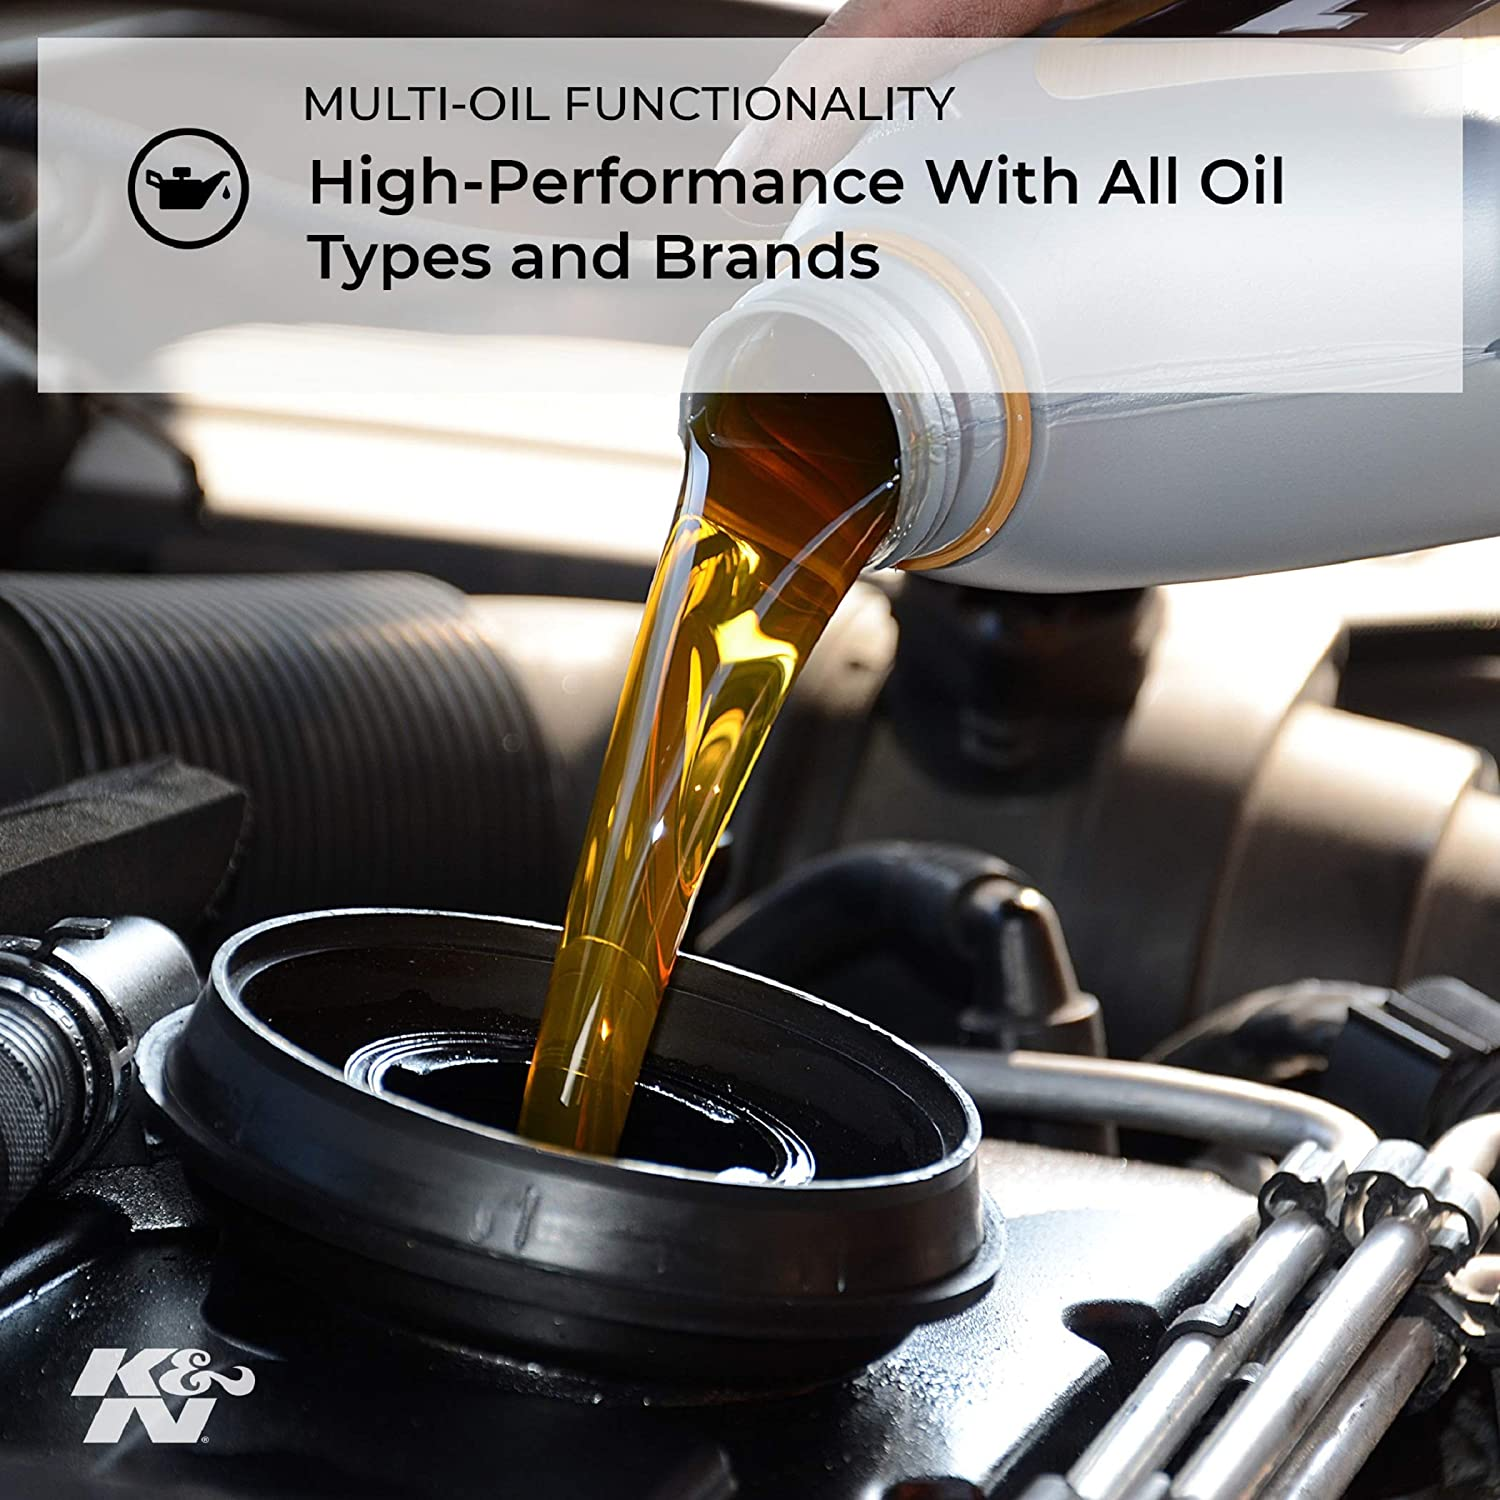 K&N Motorcycle Oil Filter: High Performance, Premium, Designed to be used with Synthetic or Conventional Oils: Fits Select Honda Vehicles, KN-116: Automotive